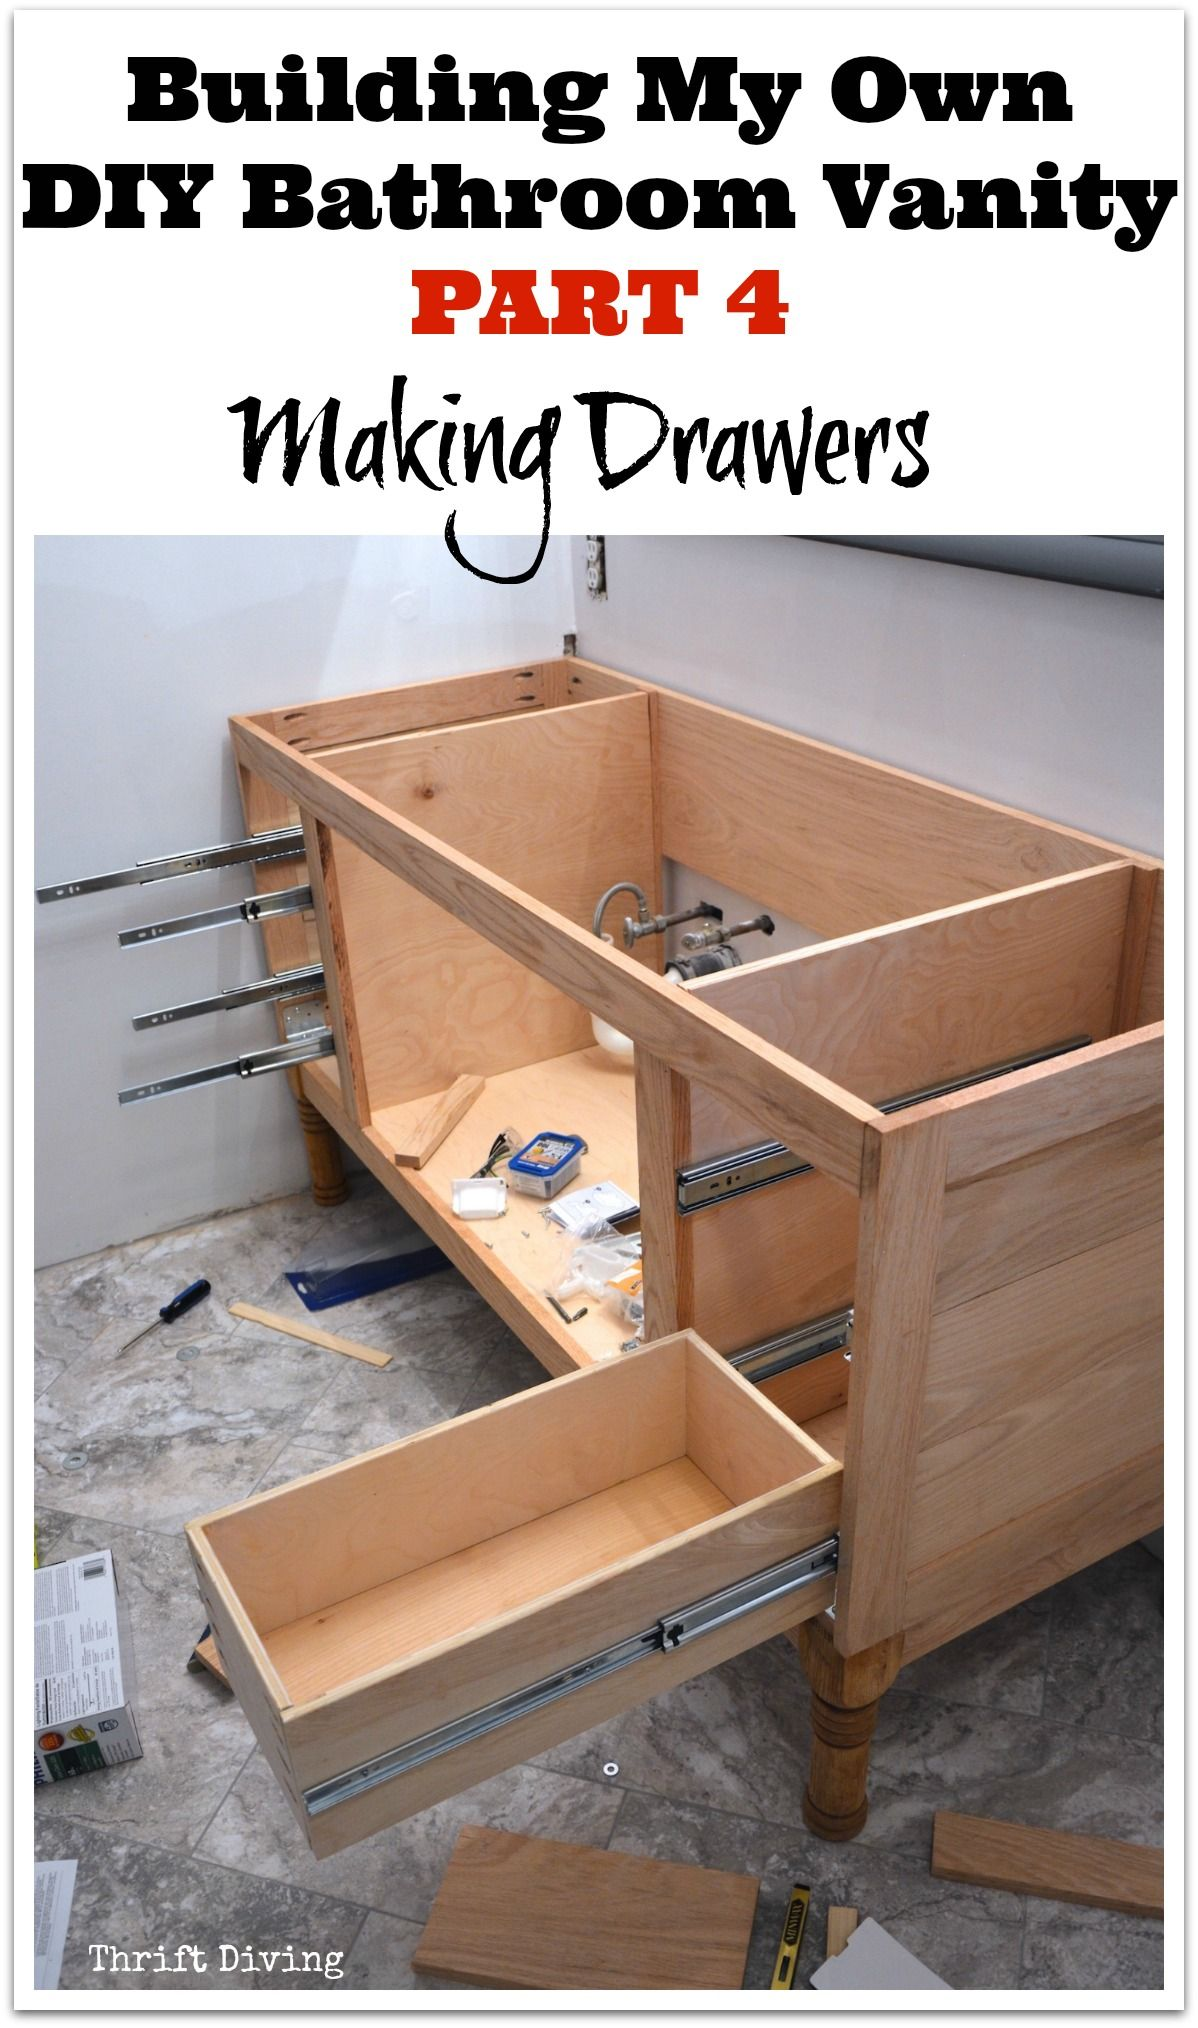 Building My Own Diy Bathroom Vanity Part 4 This In Depth Series Will Show You Step By How I Made 60 Master From Scratch